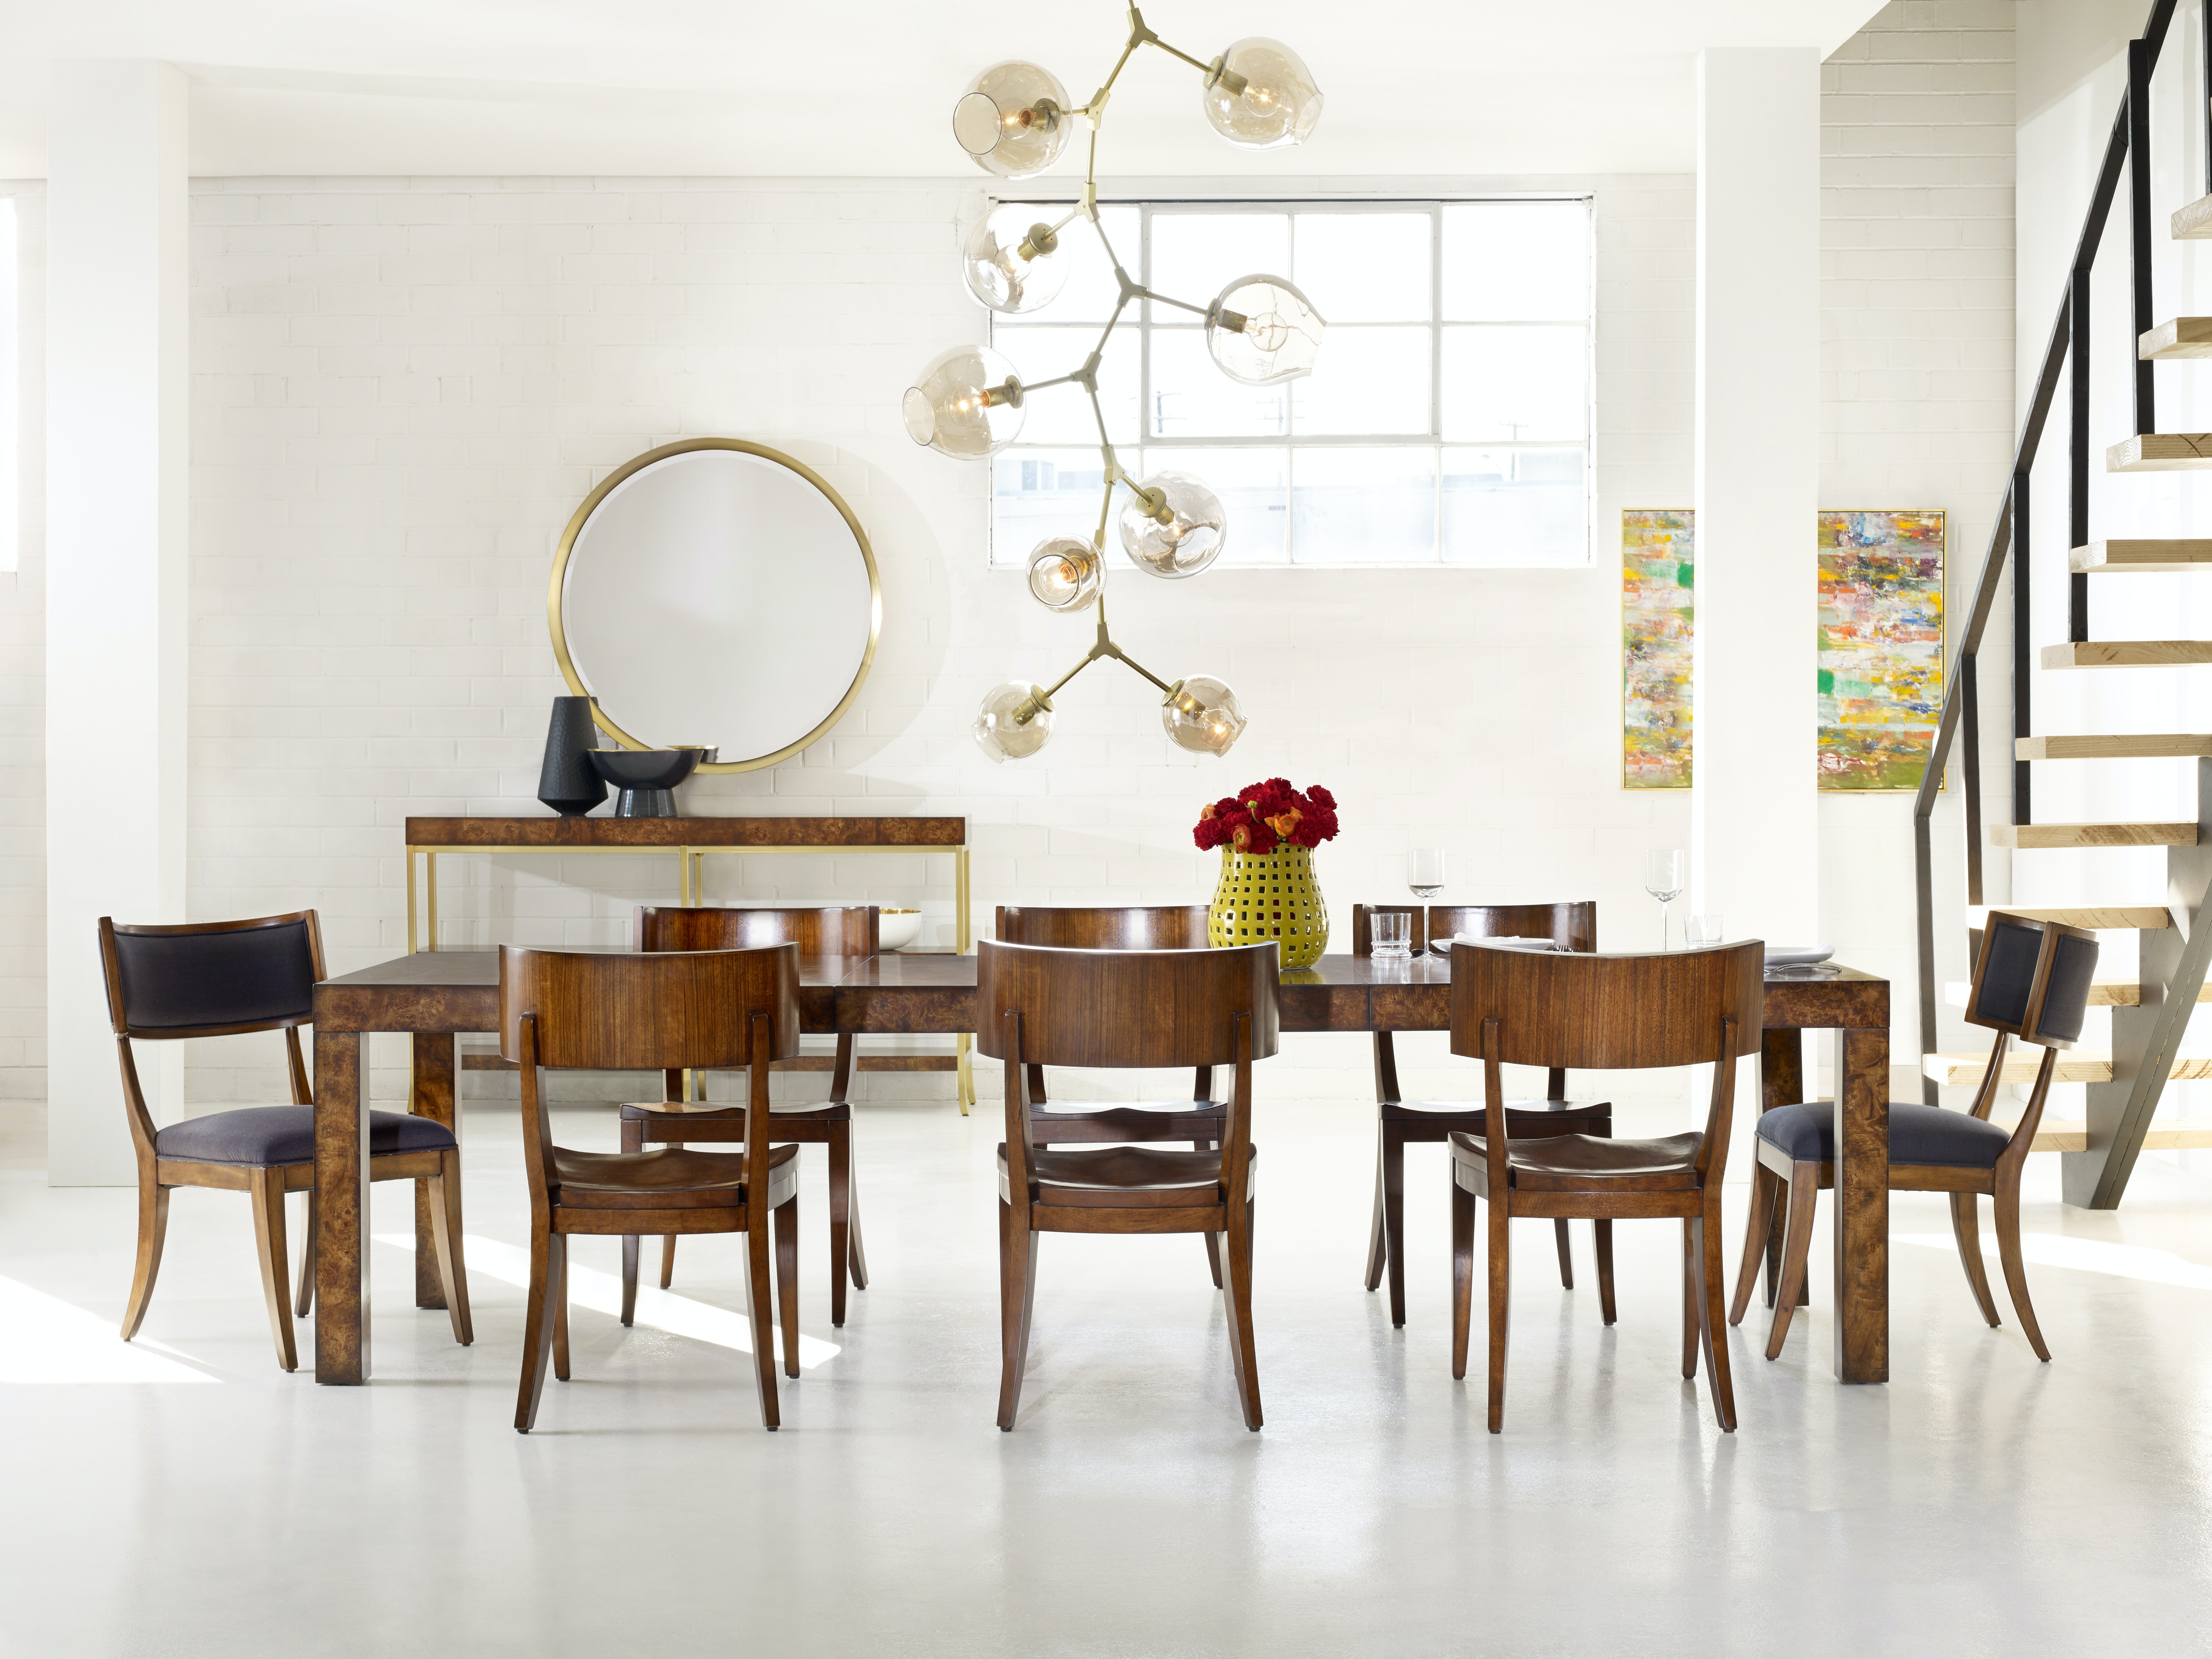 Ordinary Dining Room Showroom Part - 7: LONG BOARD DINING ROOM BY CYNTHIA ROWLEY